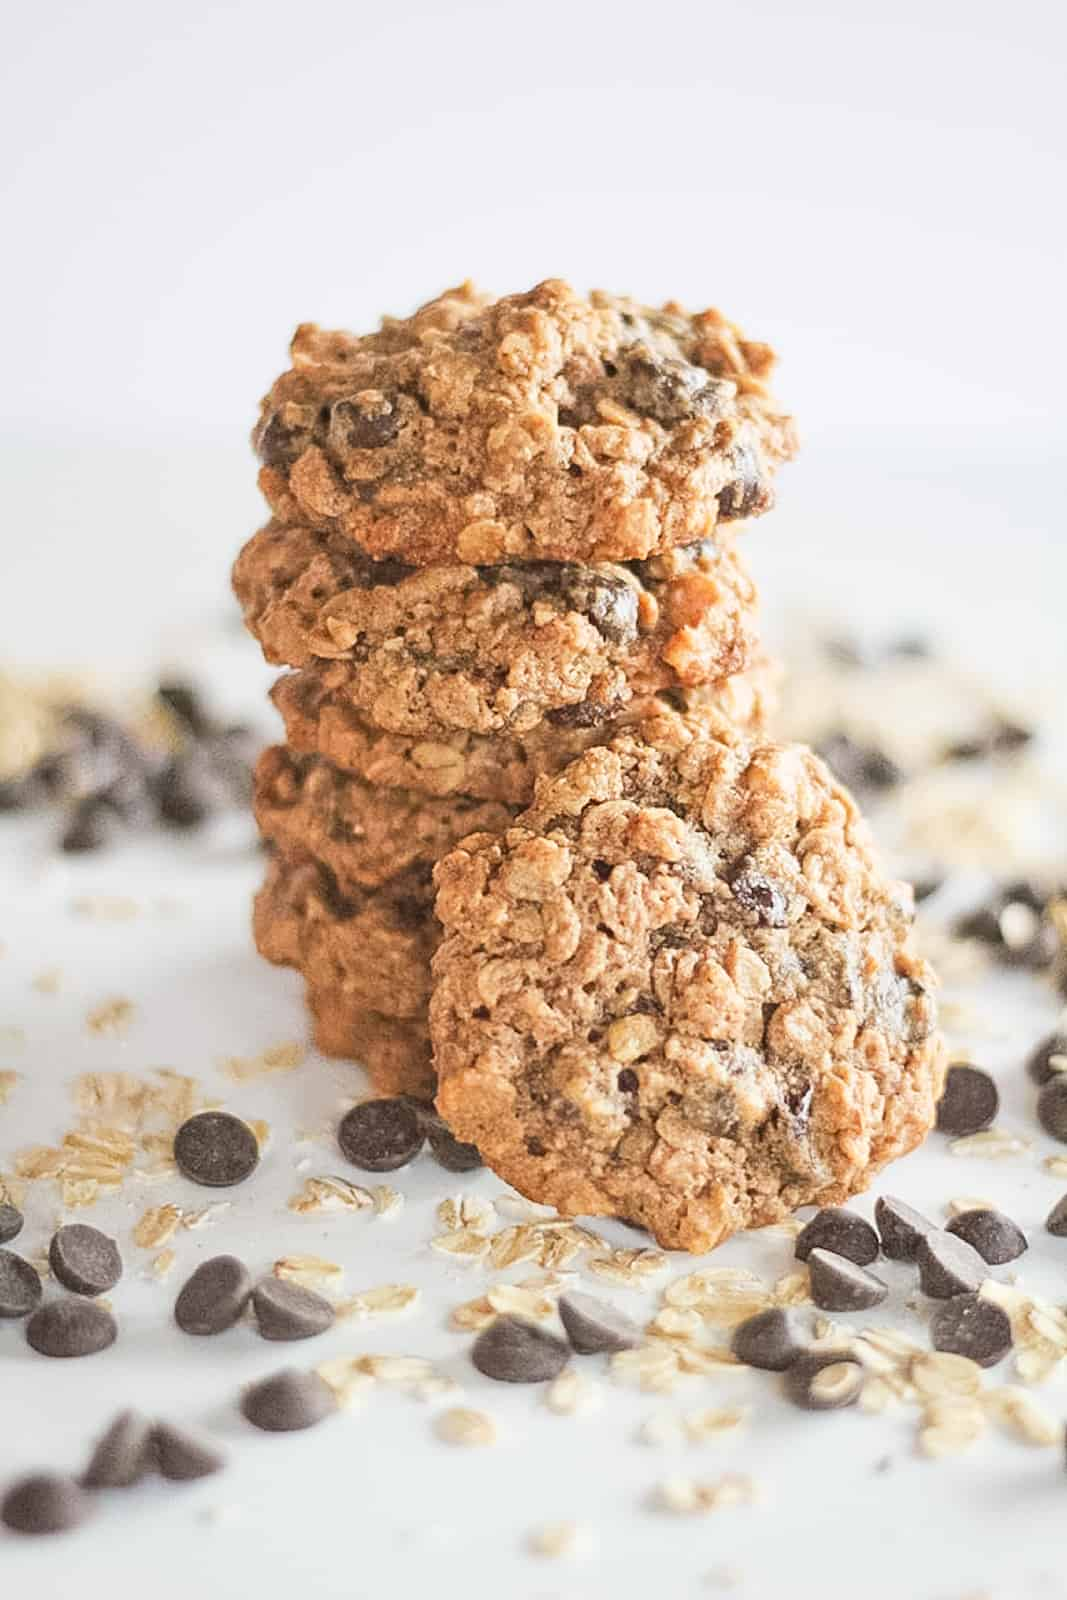 Stack of vegan chocolate chip oatmeal cookies.